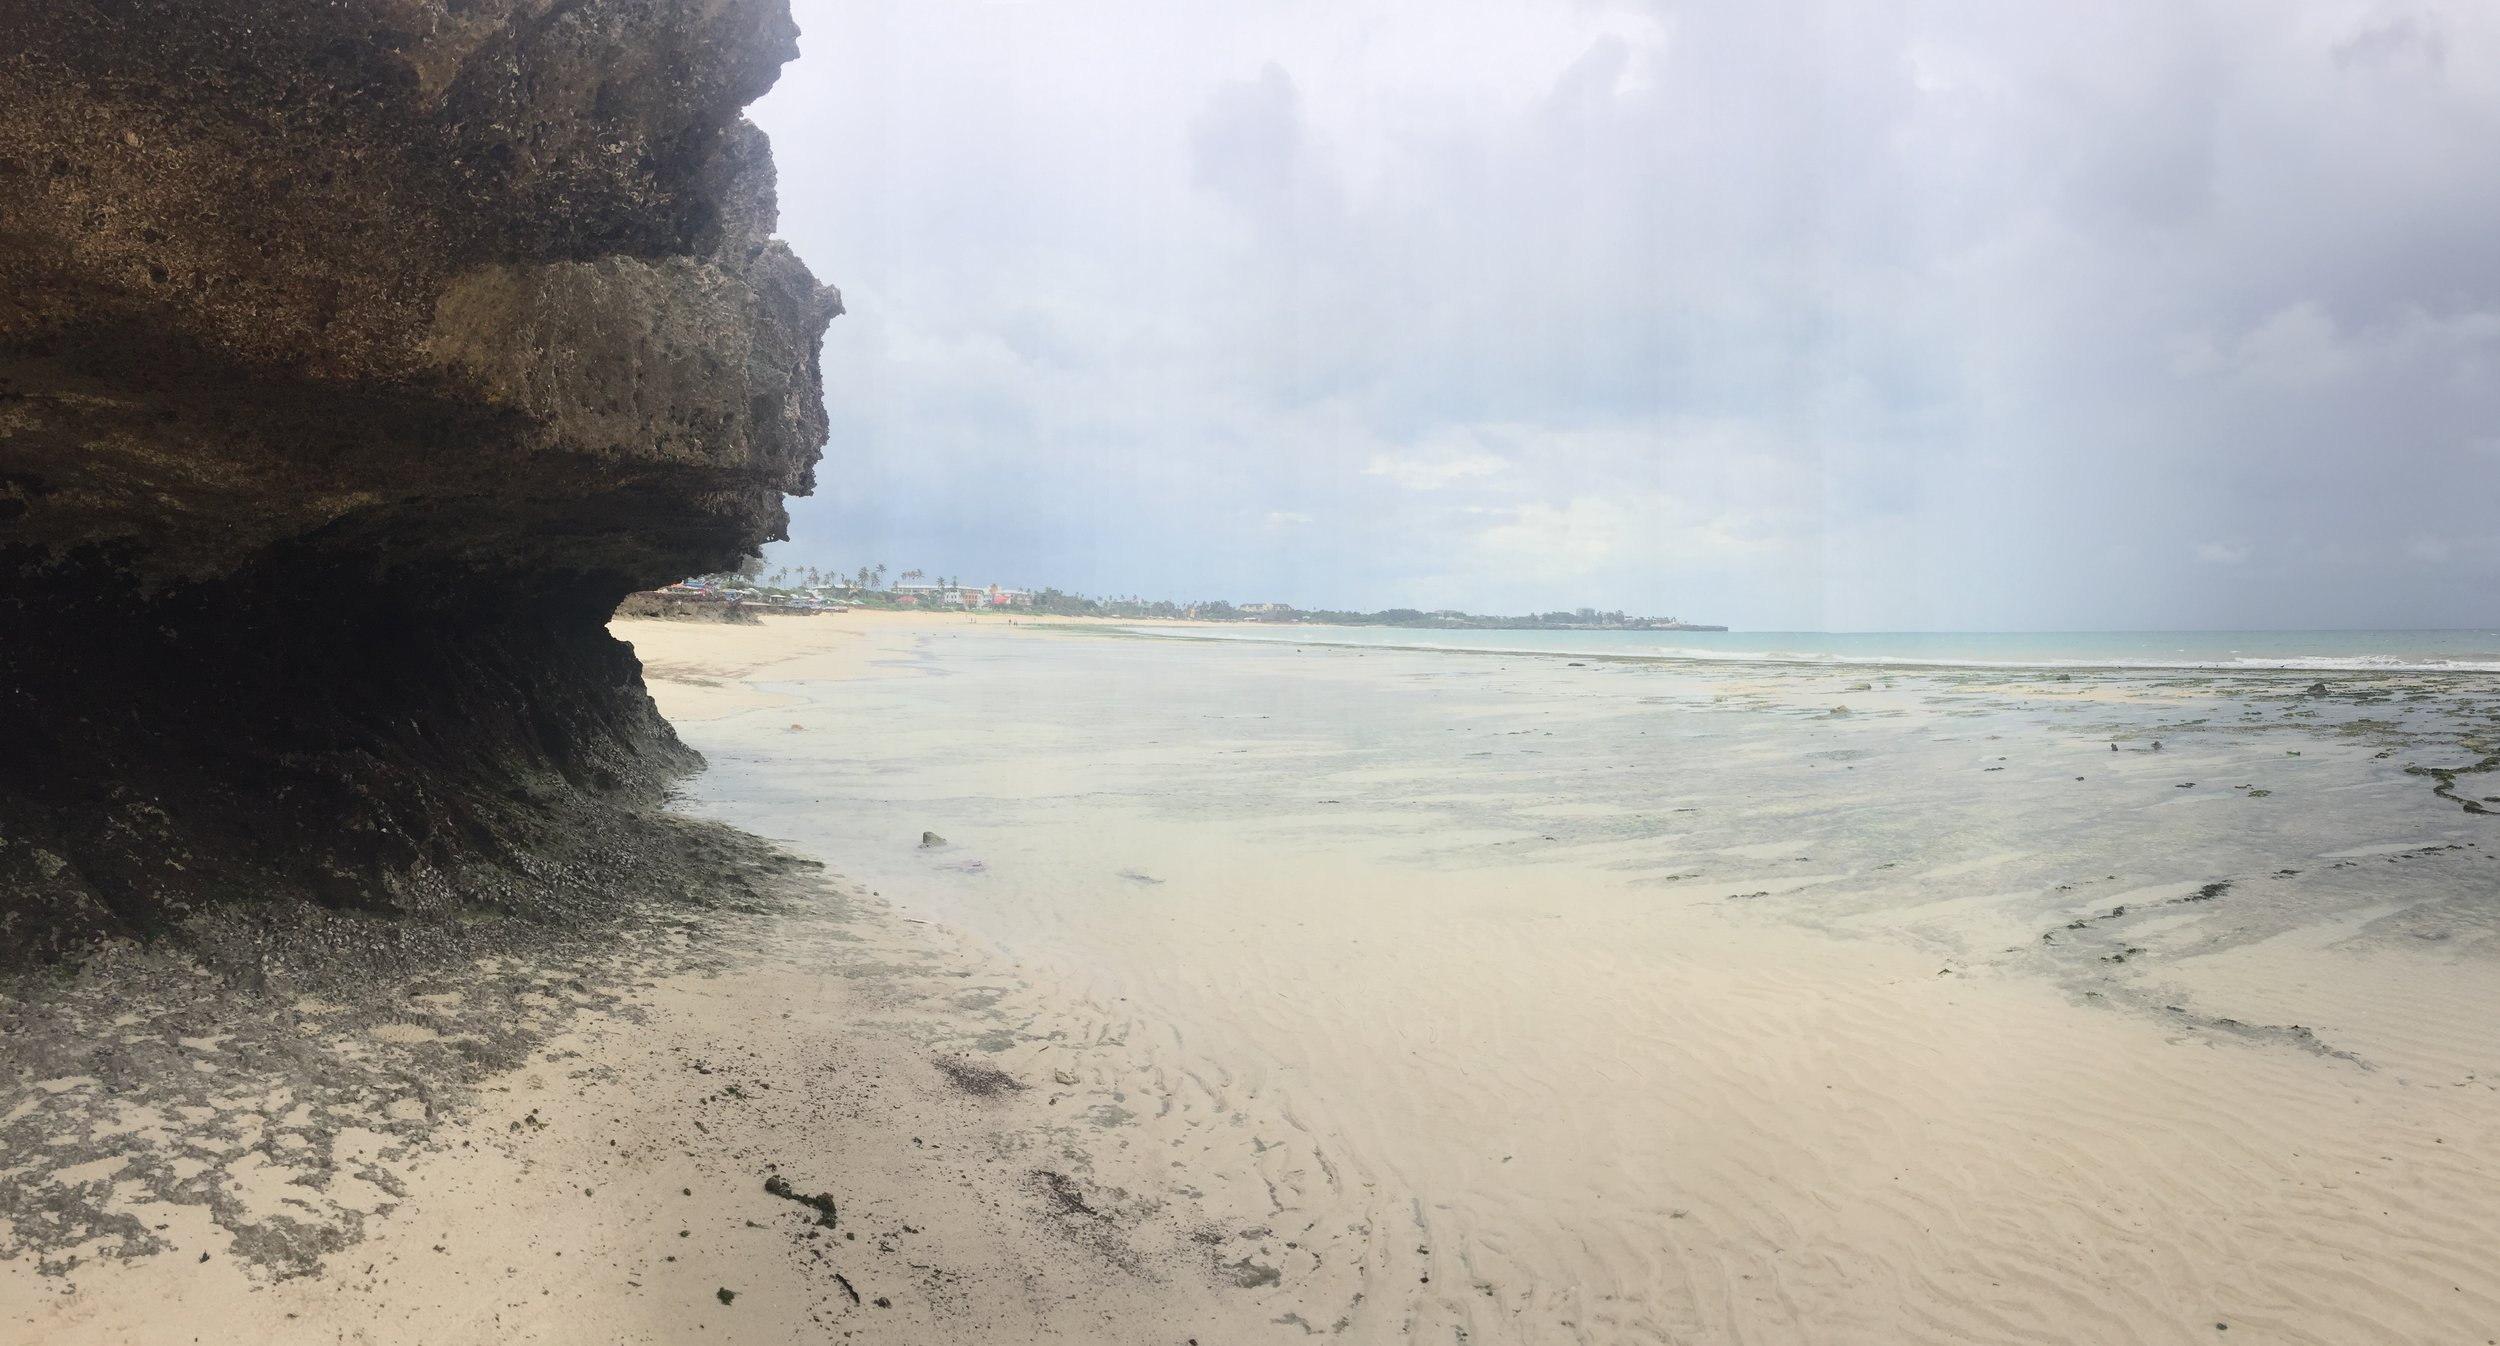 The empty beaches of Dar es Salaam, littered with trash and supposedly dangerous for tourists, but great to run.